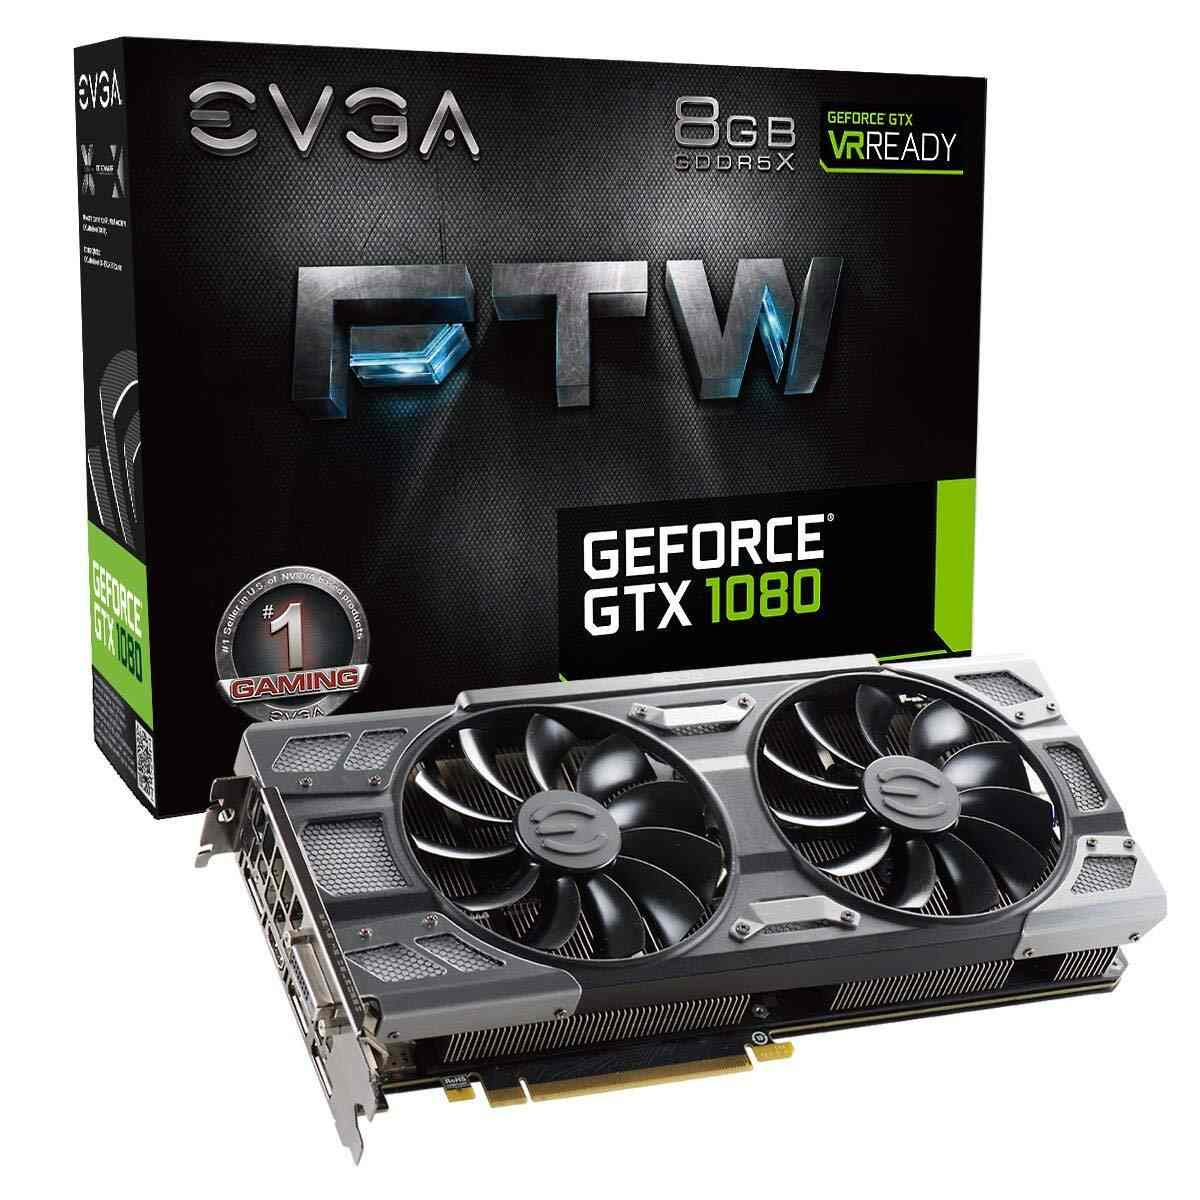 EVGA GeForce GTX 1080 FTW GAMING ACX | Best Graphics Cards For Gaming